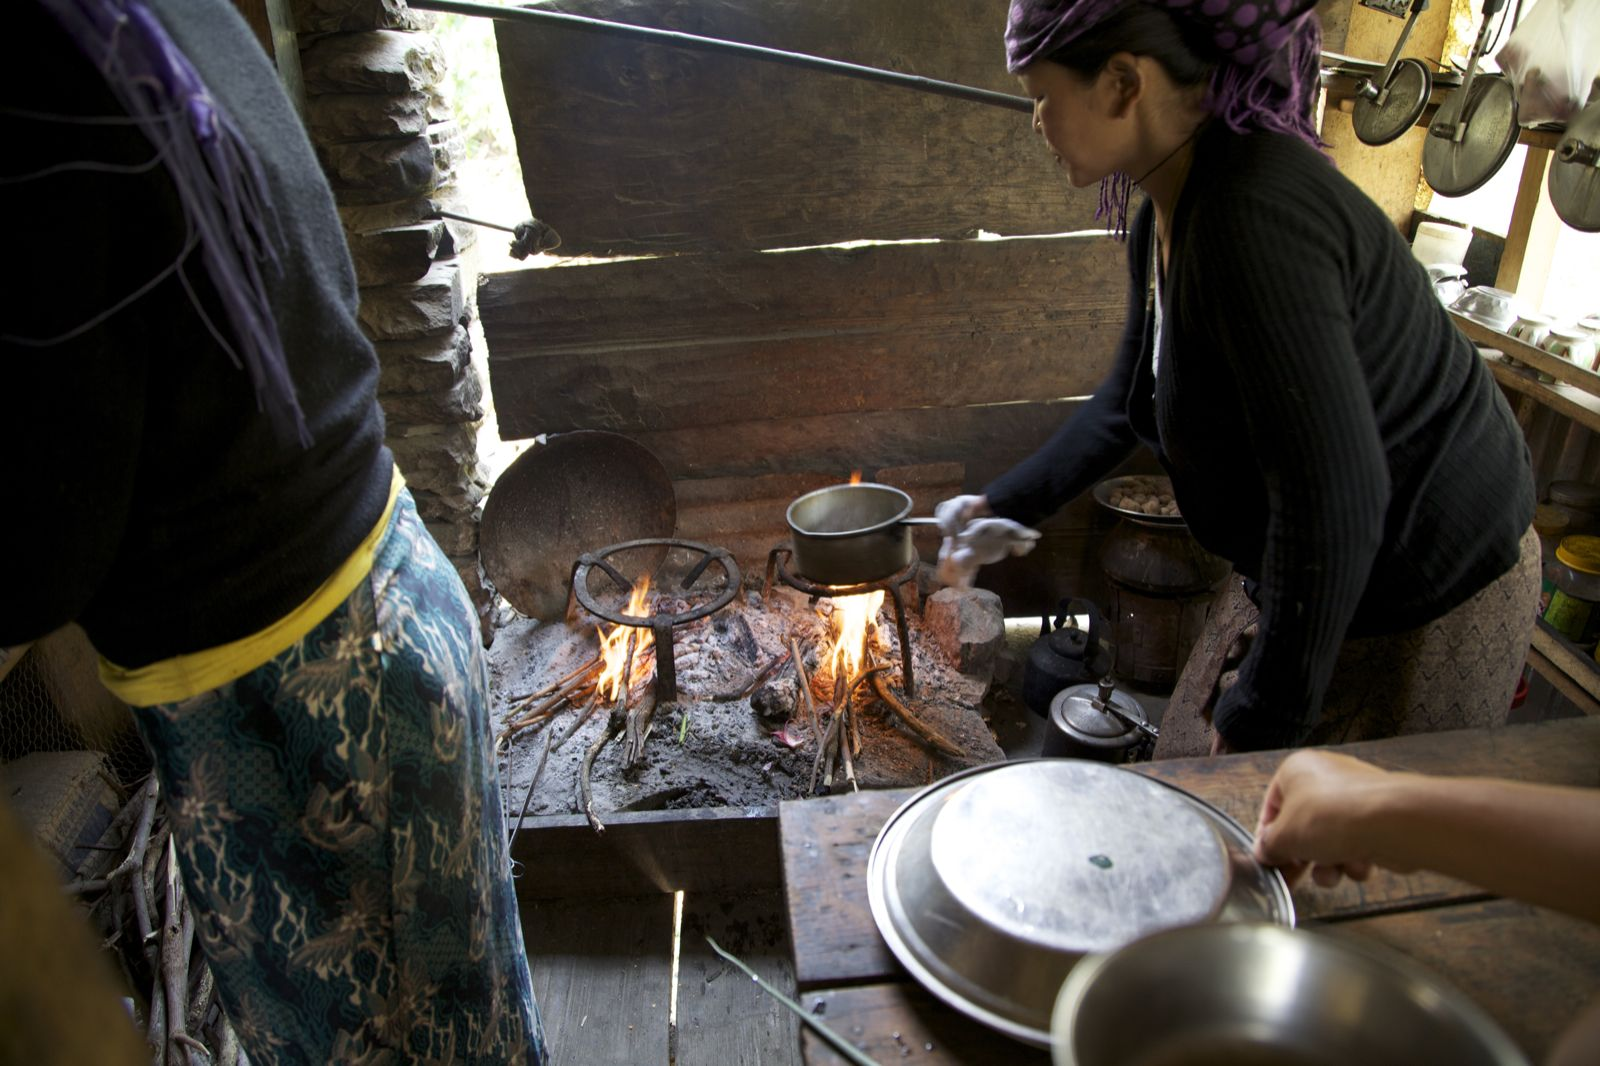 manaslu food and hygiene